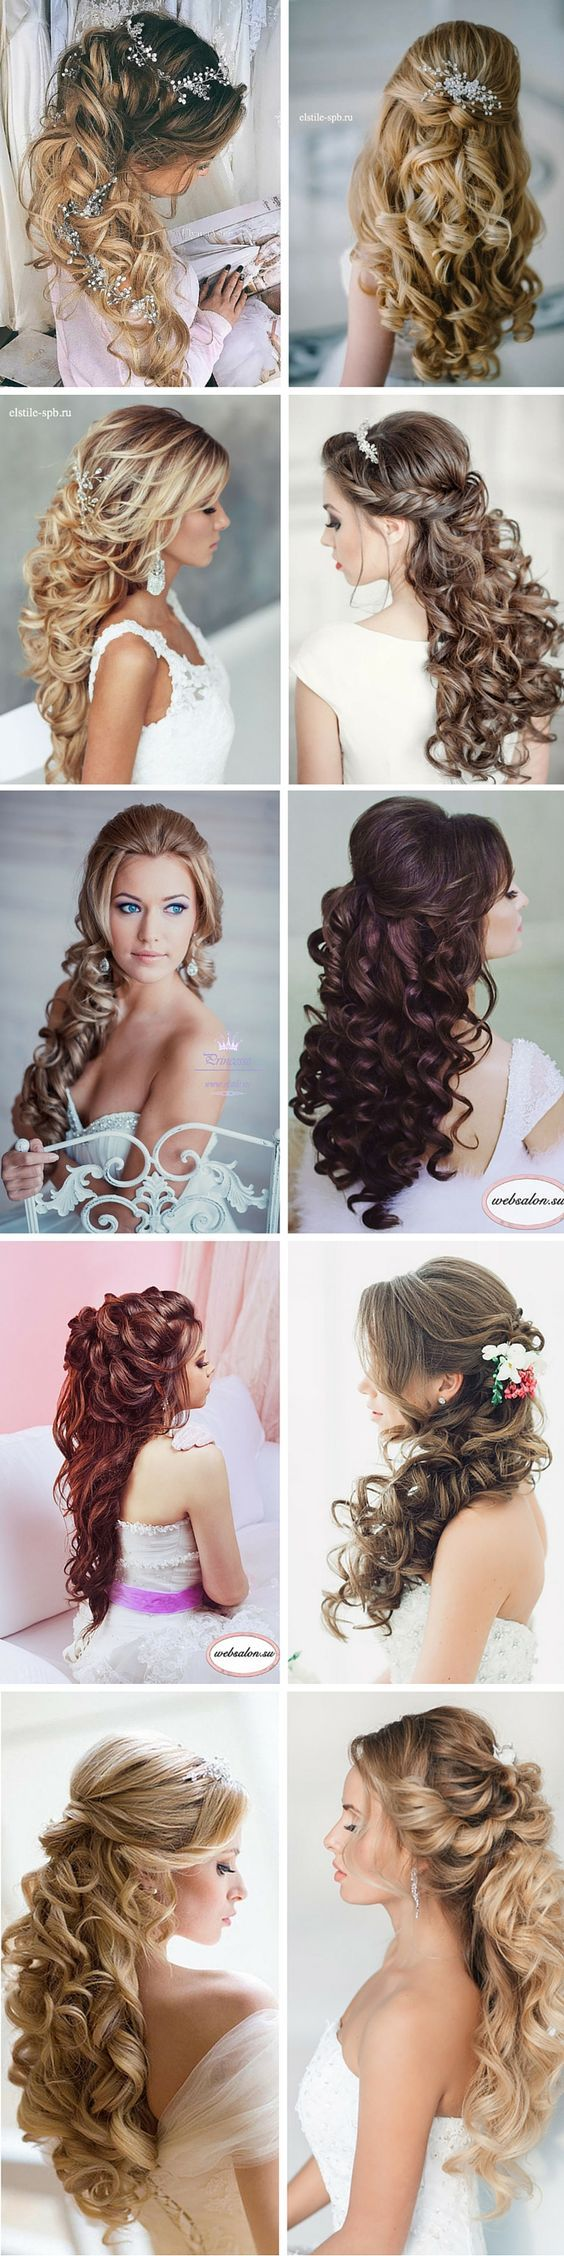 250 bridal wedding hairstyles for long hair that will